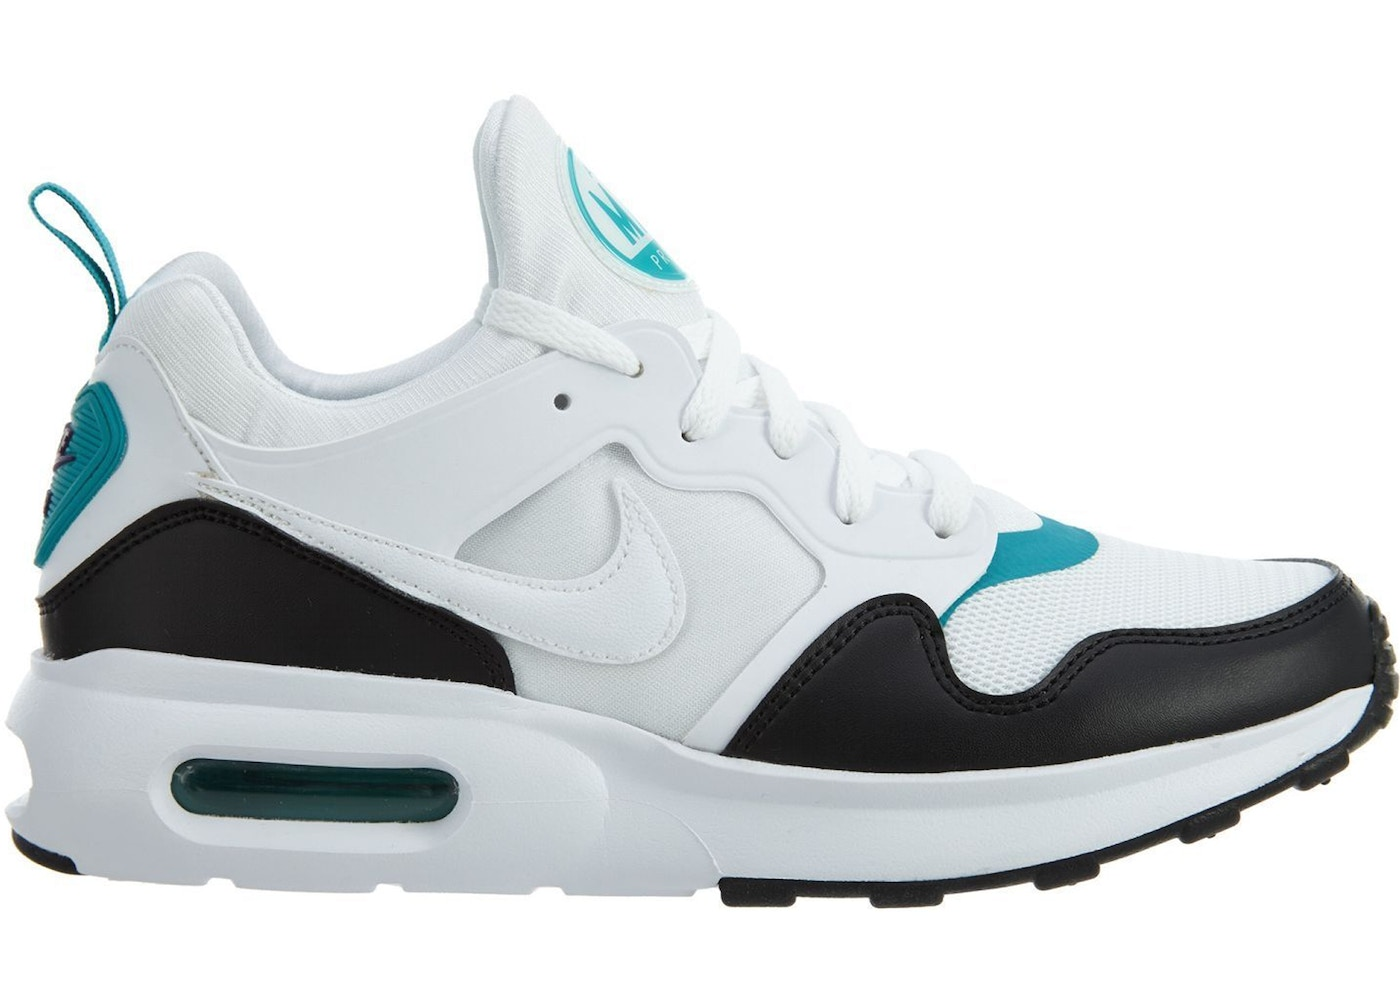 separation shoes 8210f 5b56a Air Max Prime White Turbo Green - 876068-103